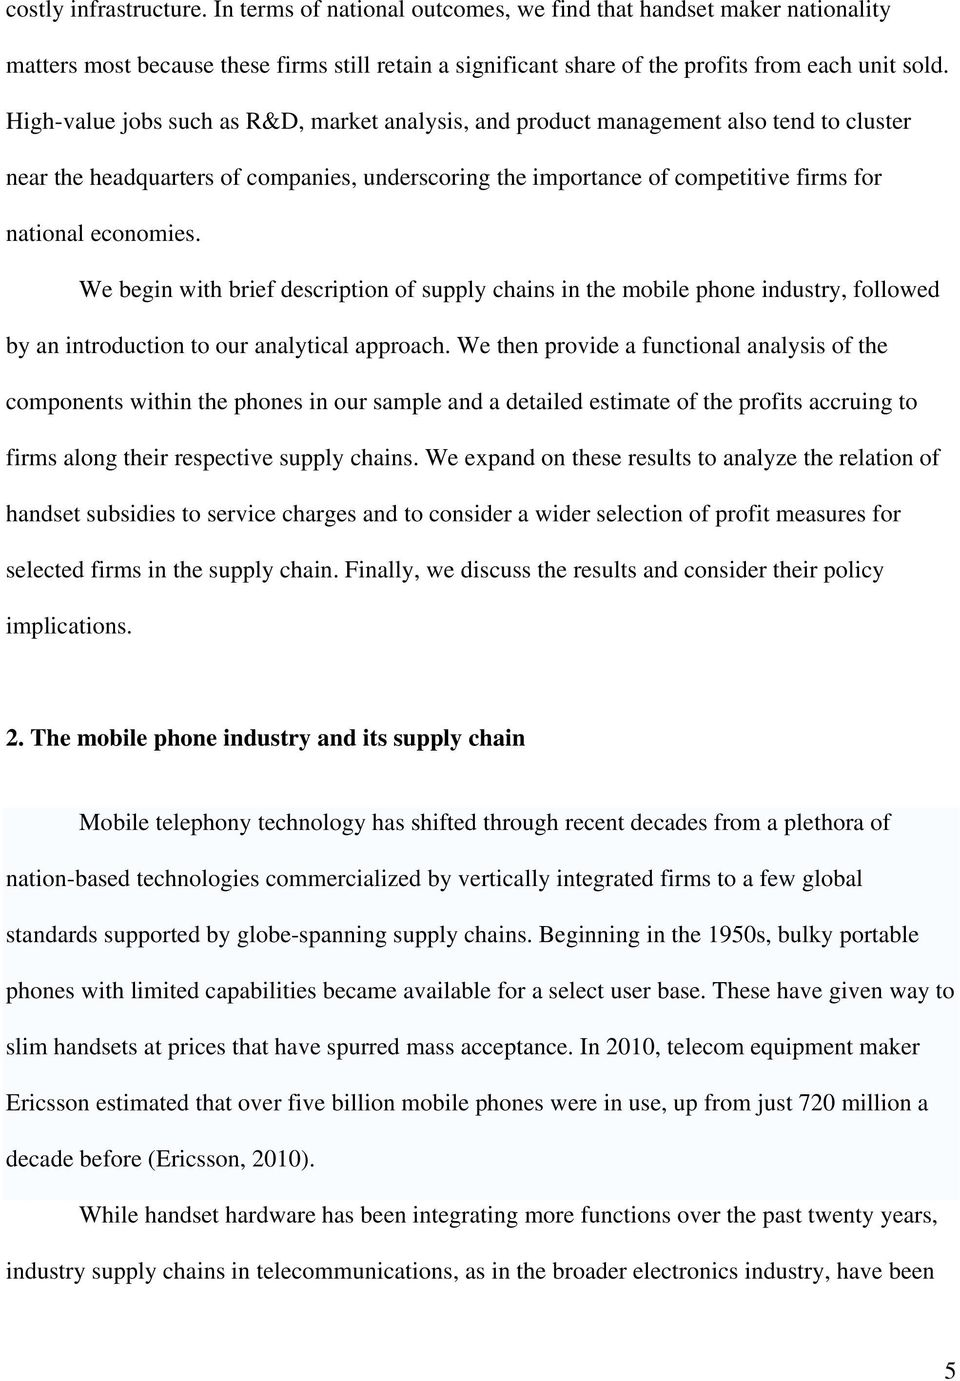 We begin with brief description of supply chains in the mobile phone industry, followed by an introduction to our analytical approach.